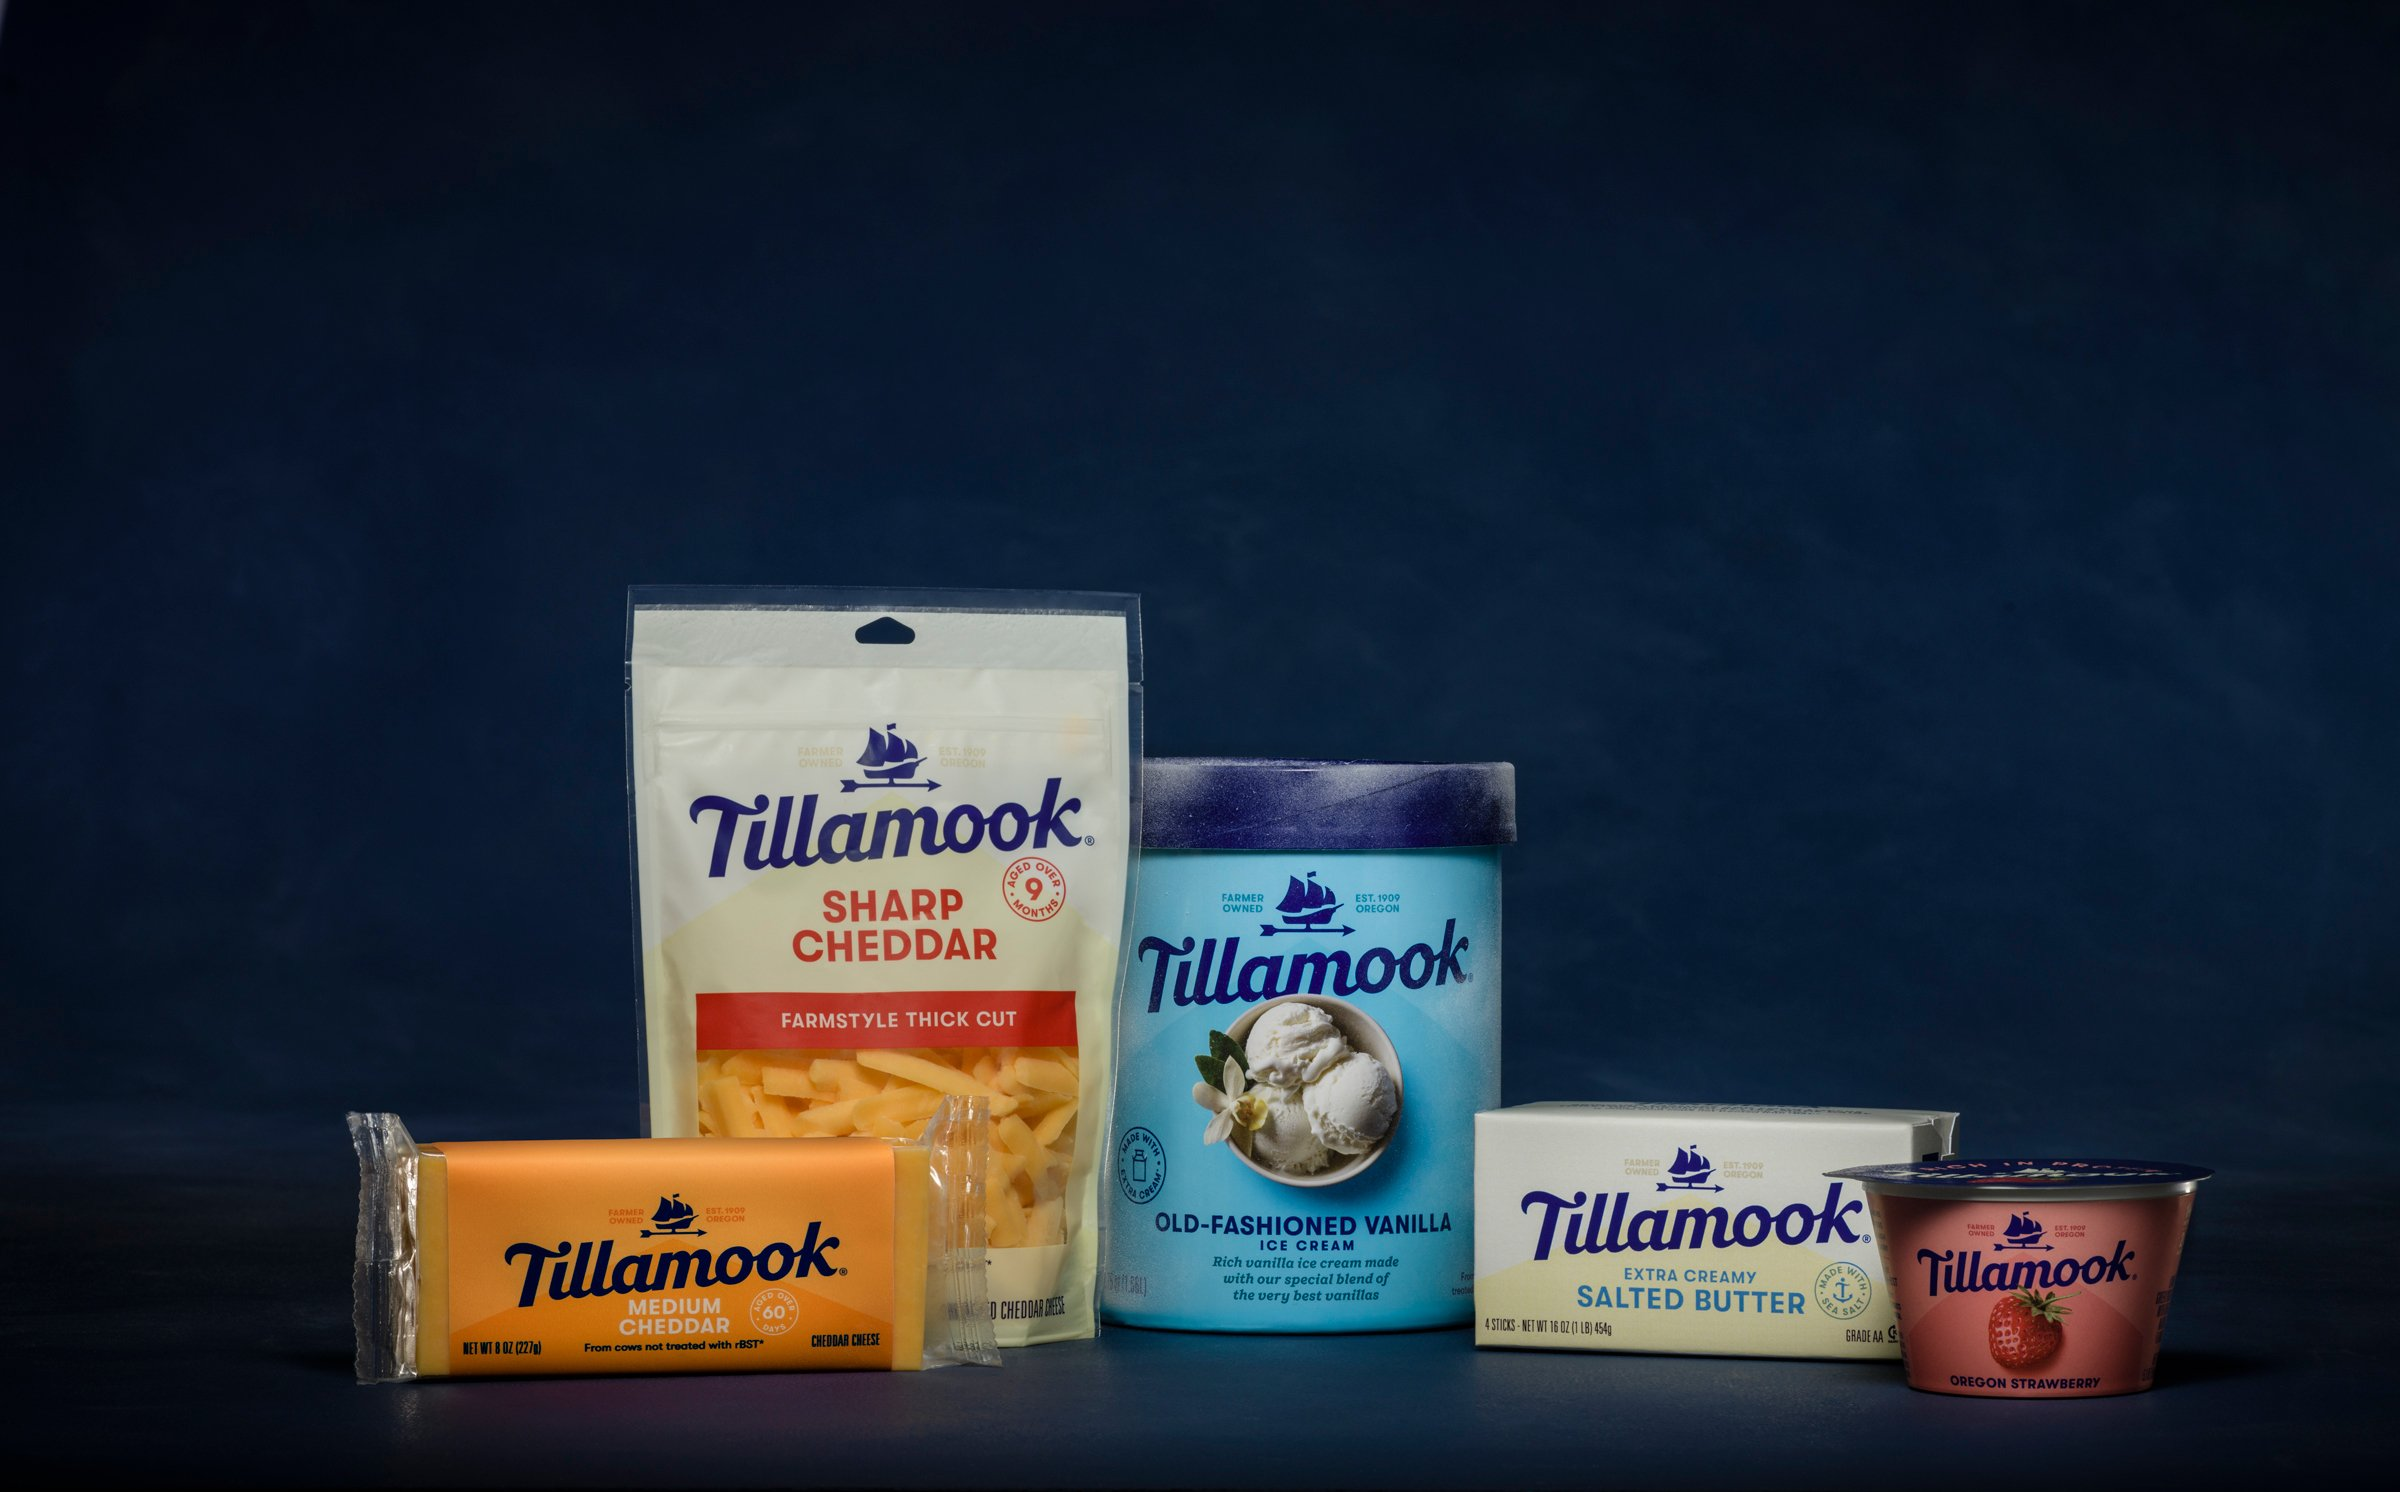 Tillamook to Unveil New Brand Identity in Celebration of Their 110th Anniversary